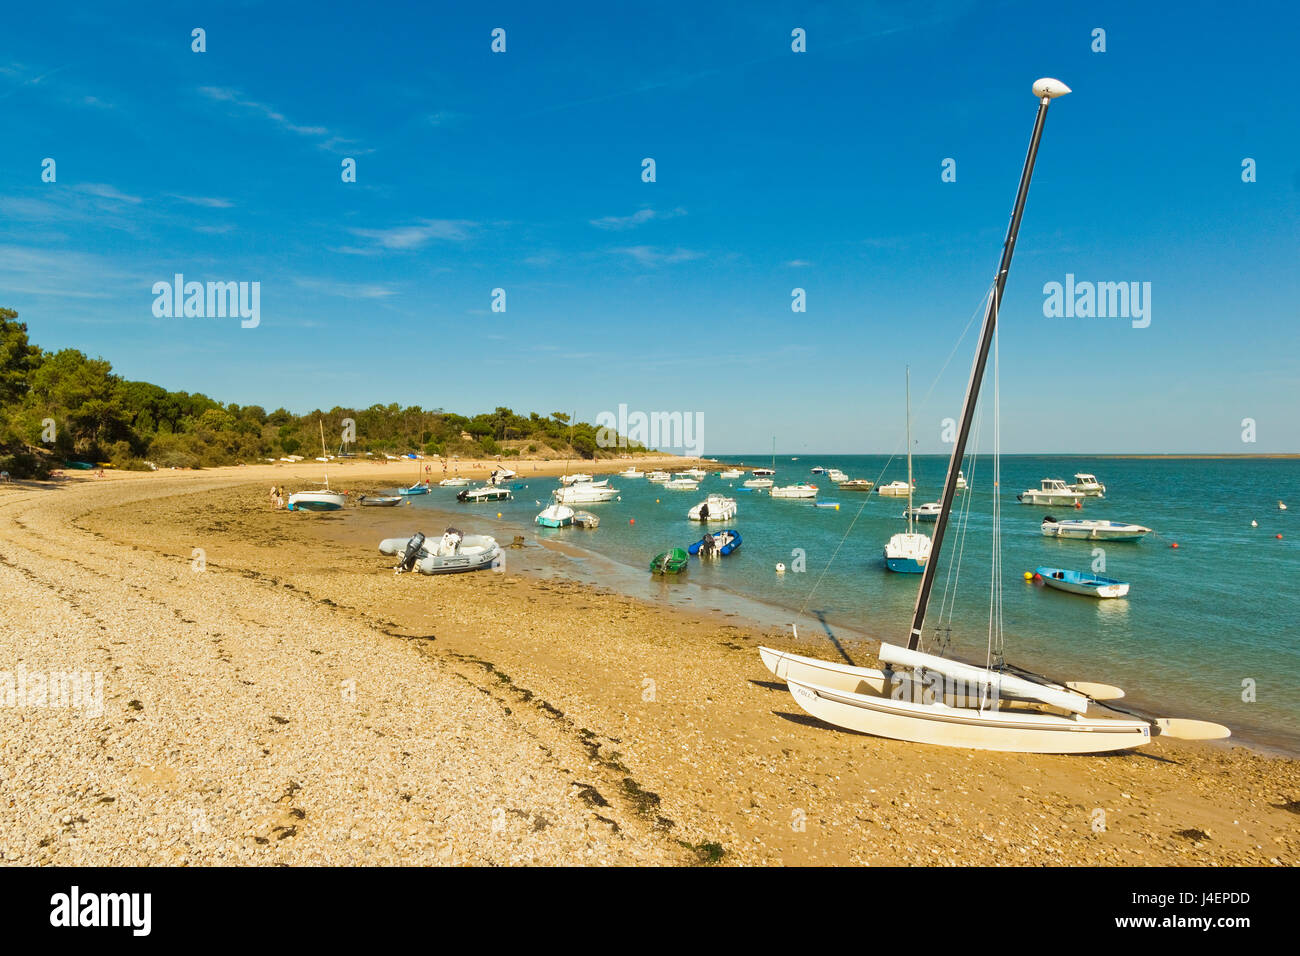 Boats moored in the entrance to Fier d Ars by the beach at La Patache, Les Portes-en-Re, Ile de Re, Charente-Maritime, - Stock Image